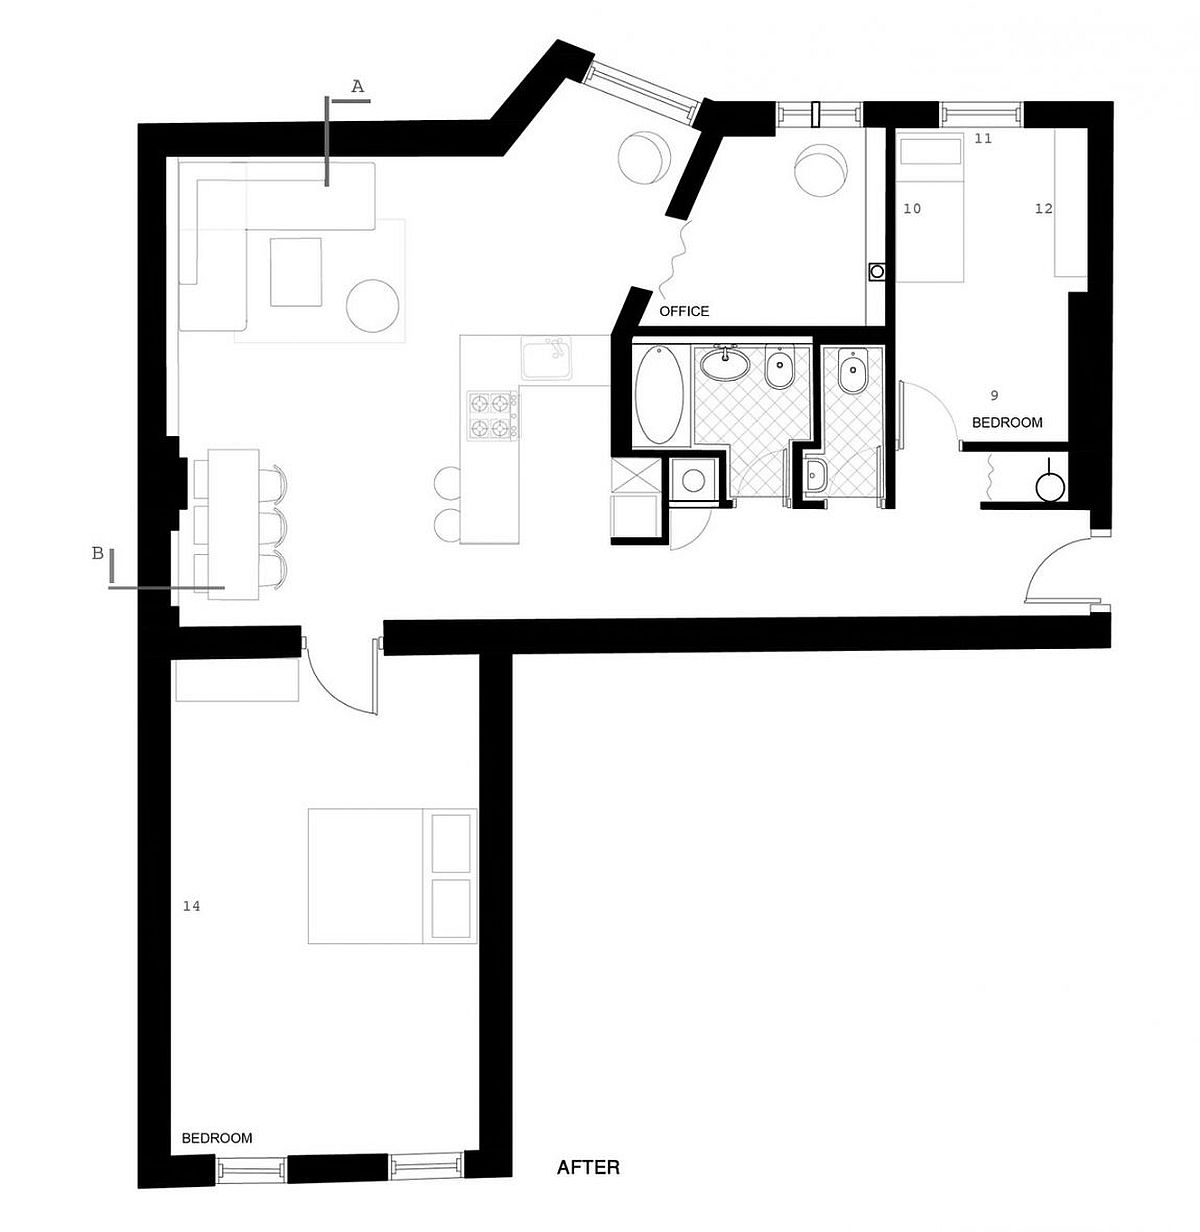 Floor plan pf the Berlin house after renovation